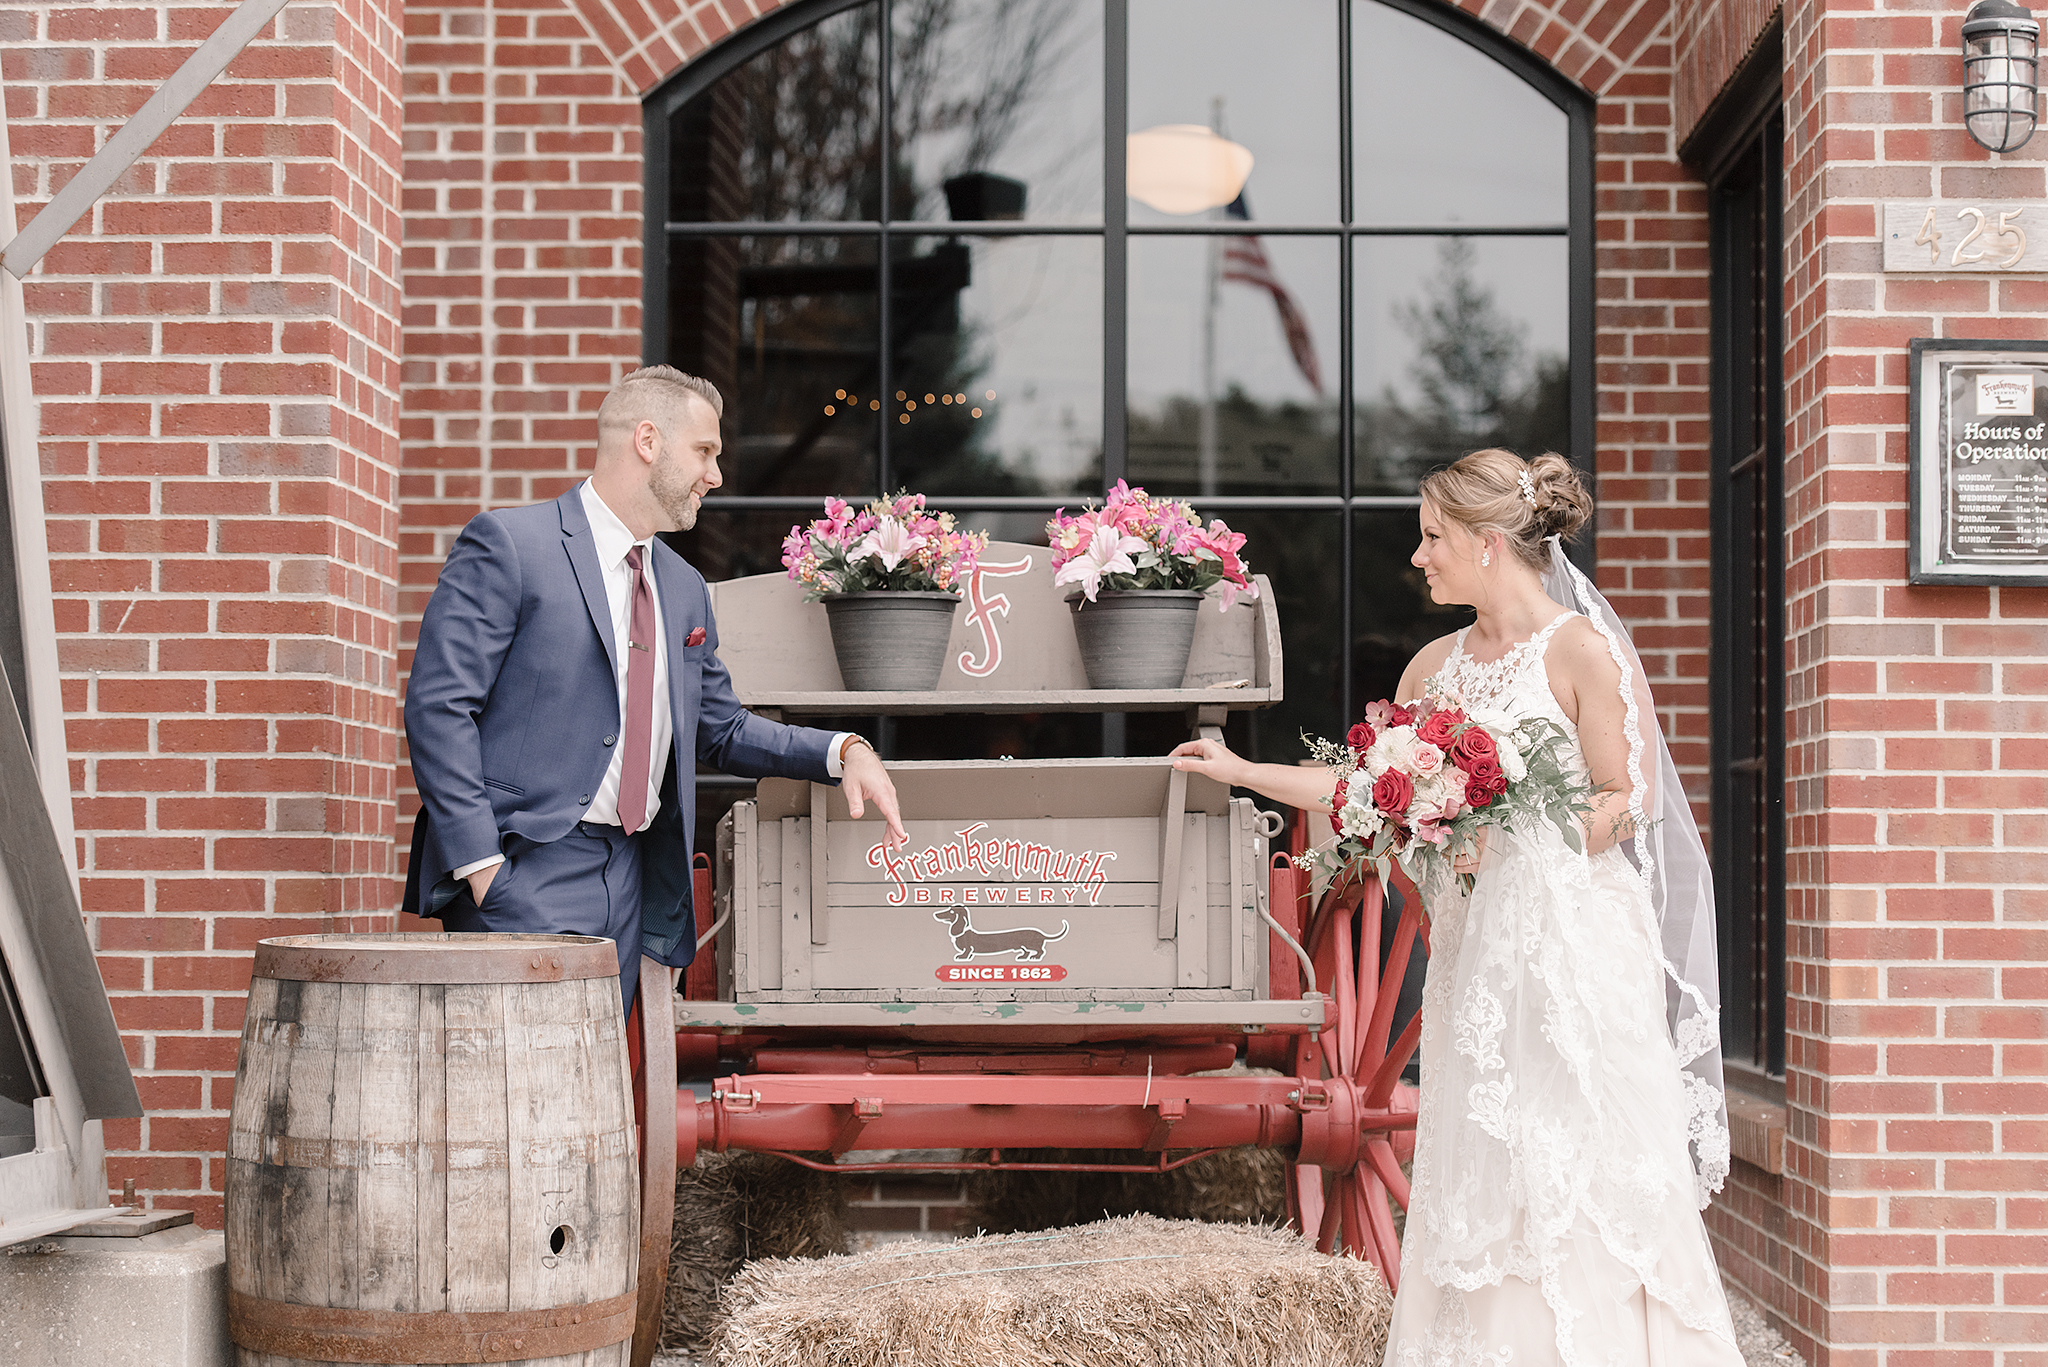 LINDSAY-ADKINS-PHOTOGRAPHY-MICHIGAN-WEDDING-PHOTOGRAPHER-FRANKENMUTH-BREWERY-WEDDING-MICHIGAN-BLOG-27